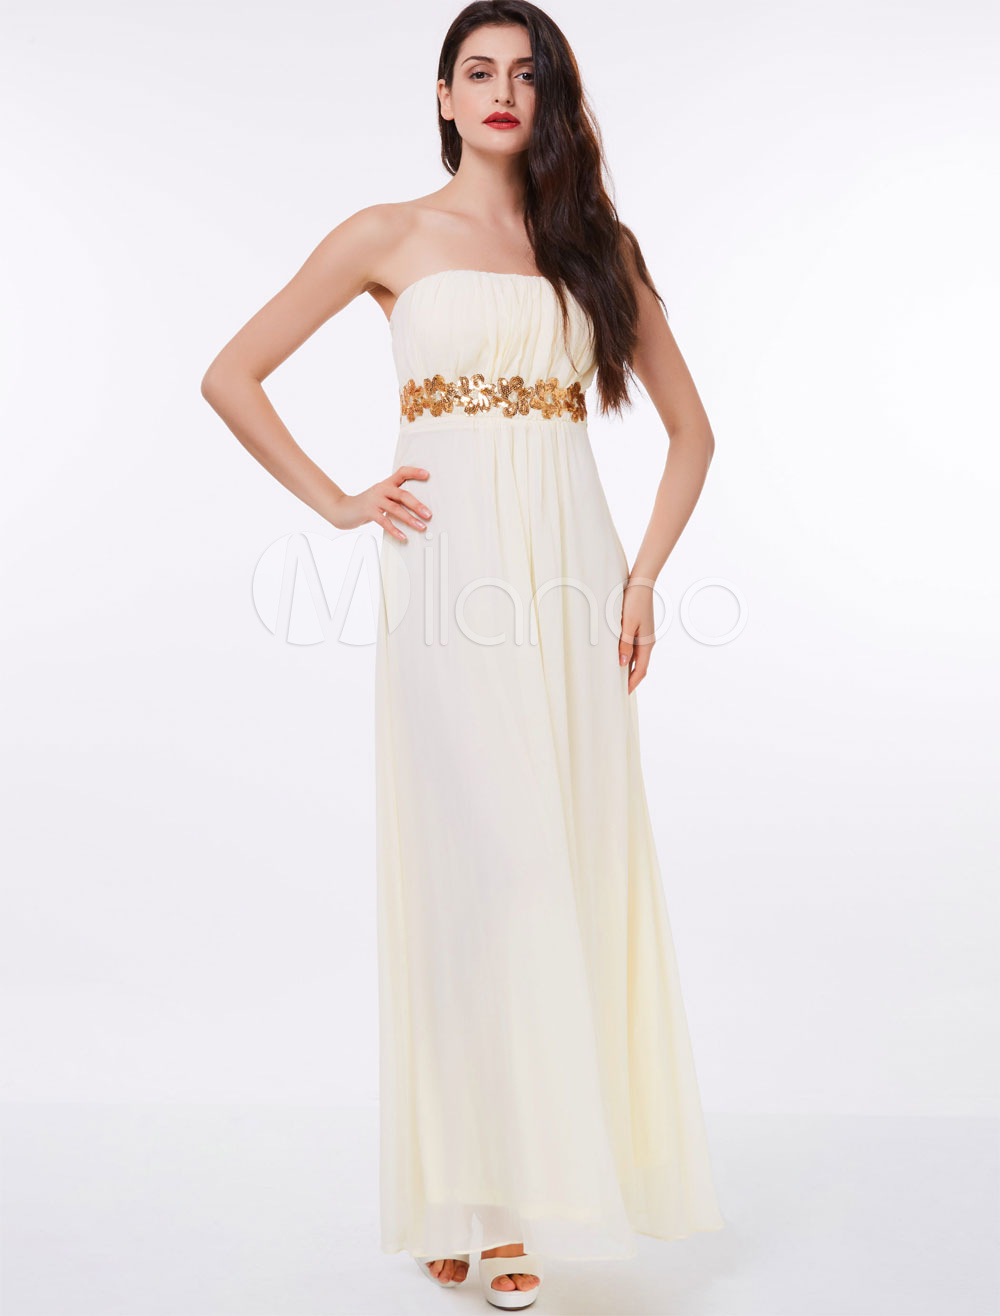 Buy Long Prom Dresses Strapless Pleated Chiffon Ivory Floor Length Formal Party Dress for $52.79 in Milanoo store